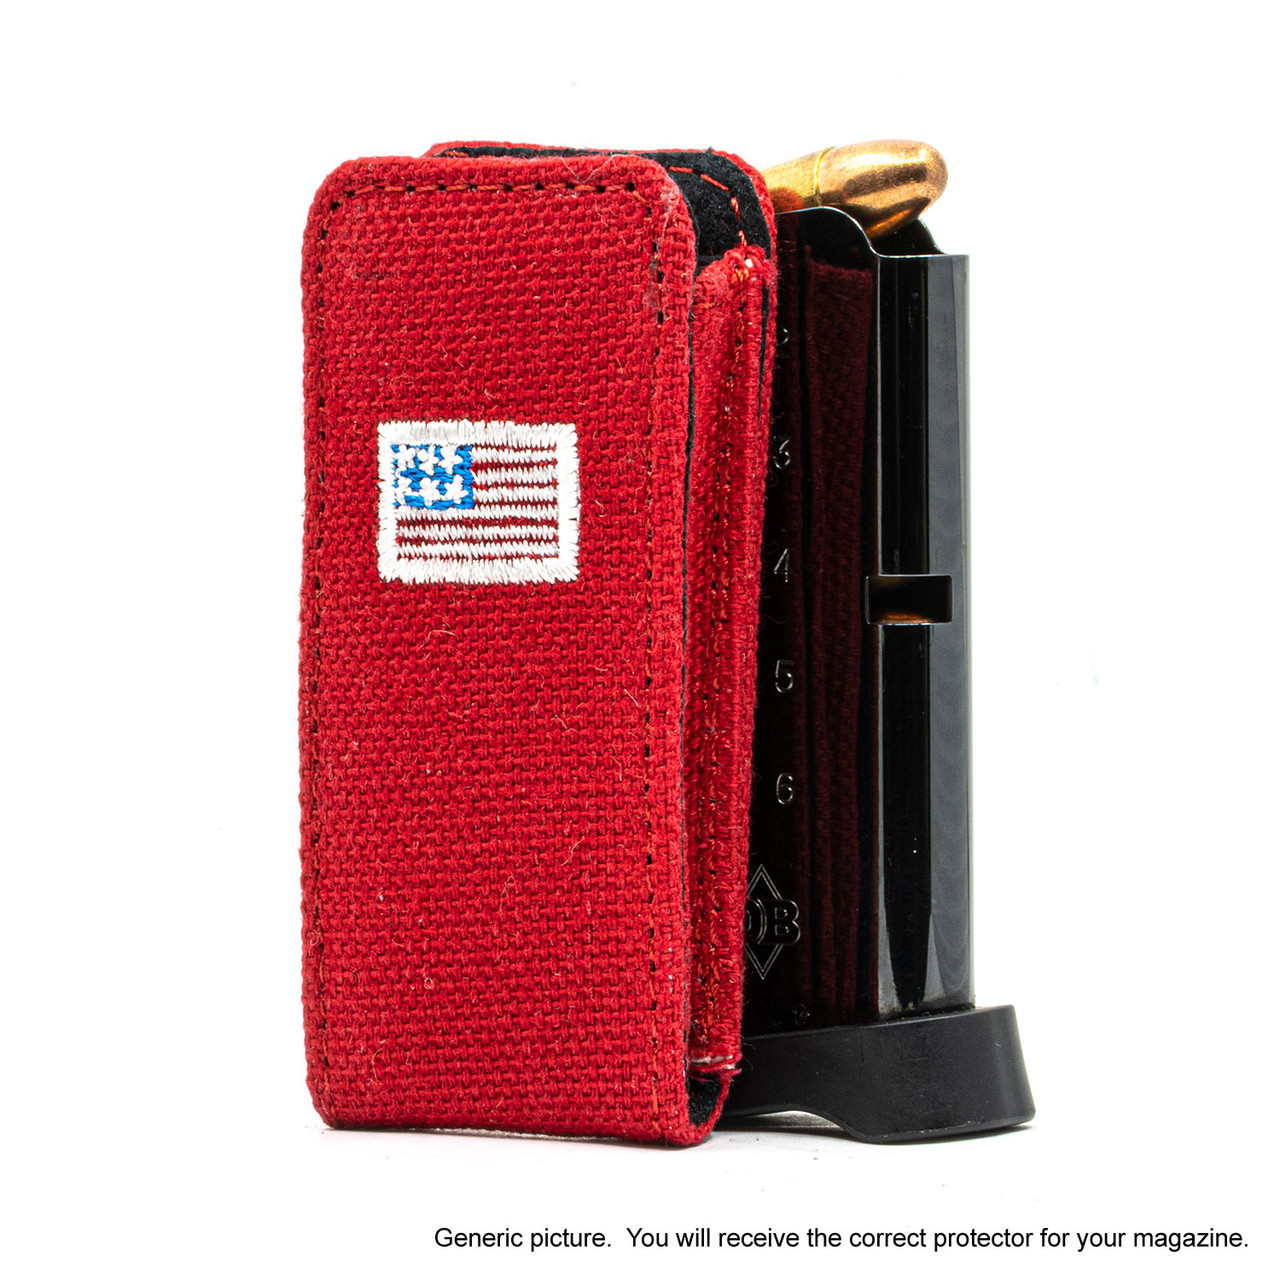 CZ 75D Compact Red Canvas Flag Magazine Pocket Protector